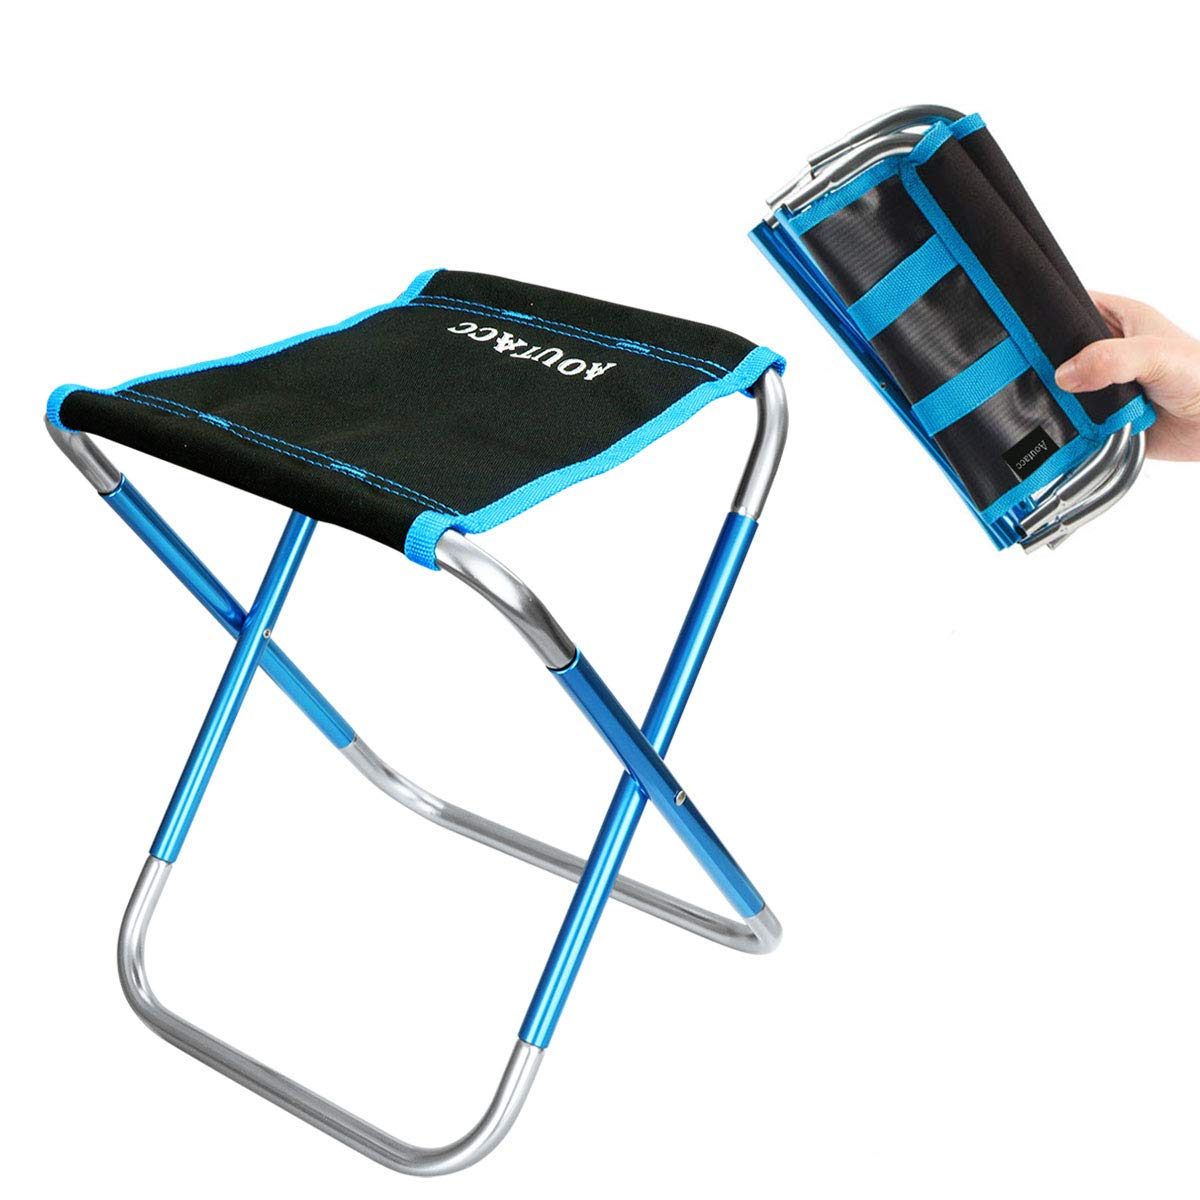 Compact Traveling Foot Stool Folding Camping Stool Lightweight /& Portable Sturdy Chair for Picnic Camping Hiking Backpacking